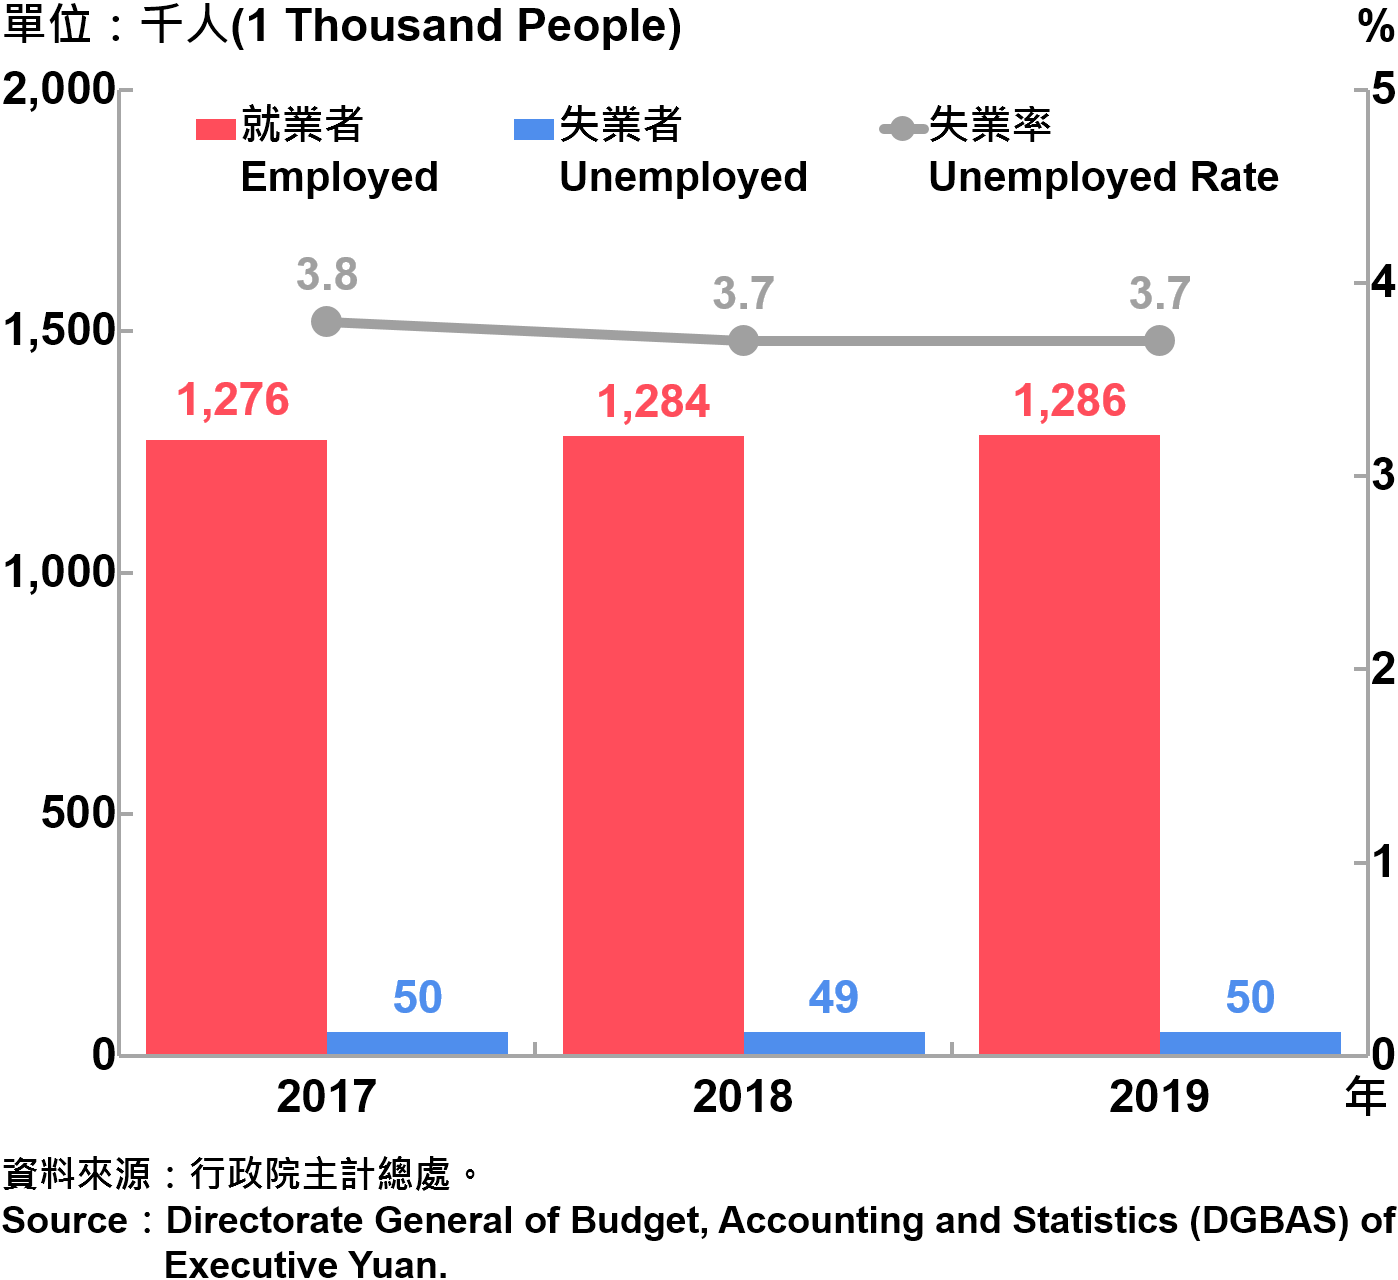 臺北市勞動力人數統計—2019 Labor Force Statistics in Taipei City—2019